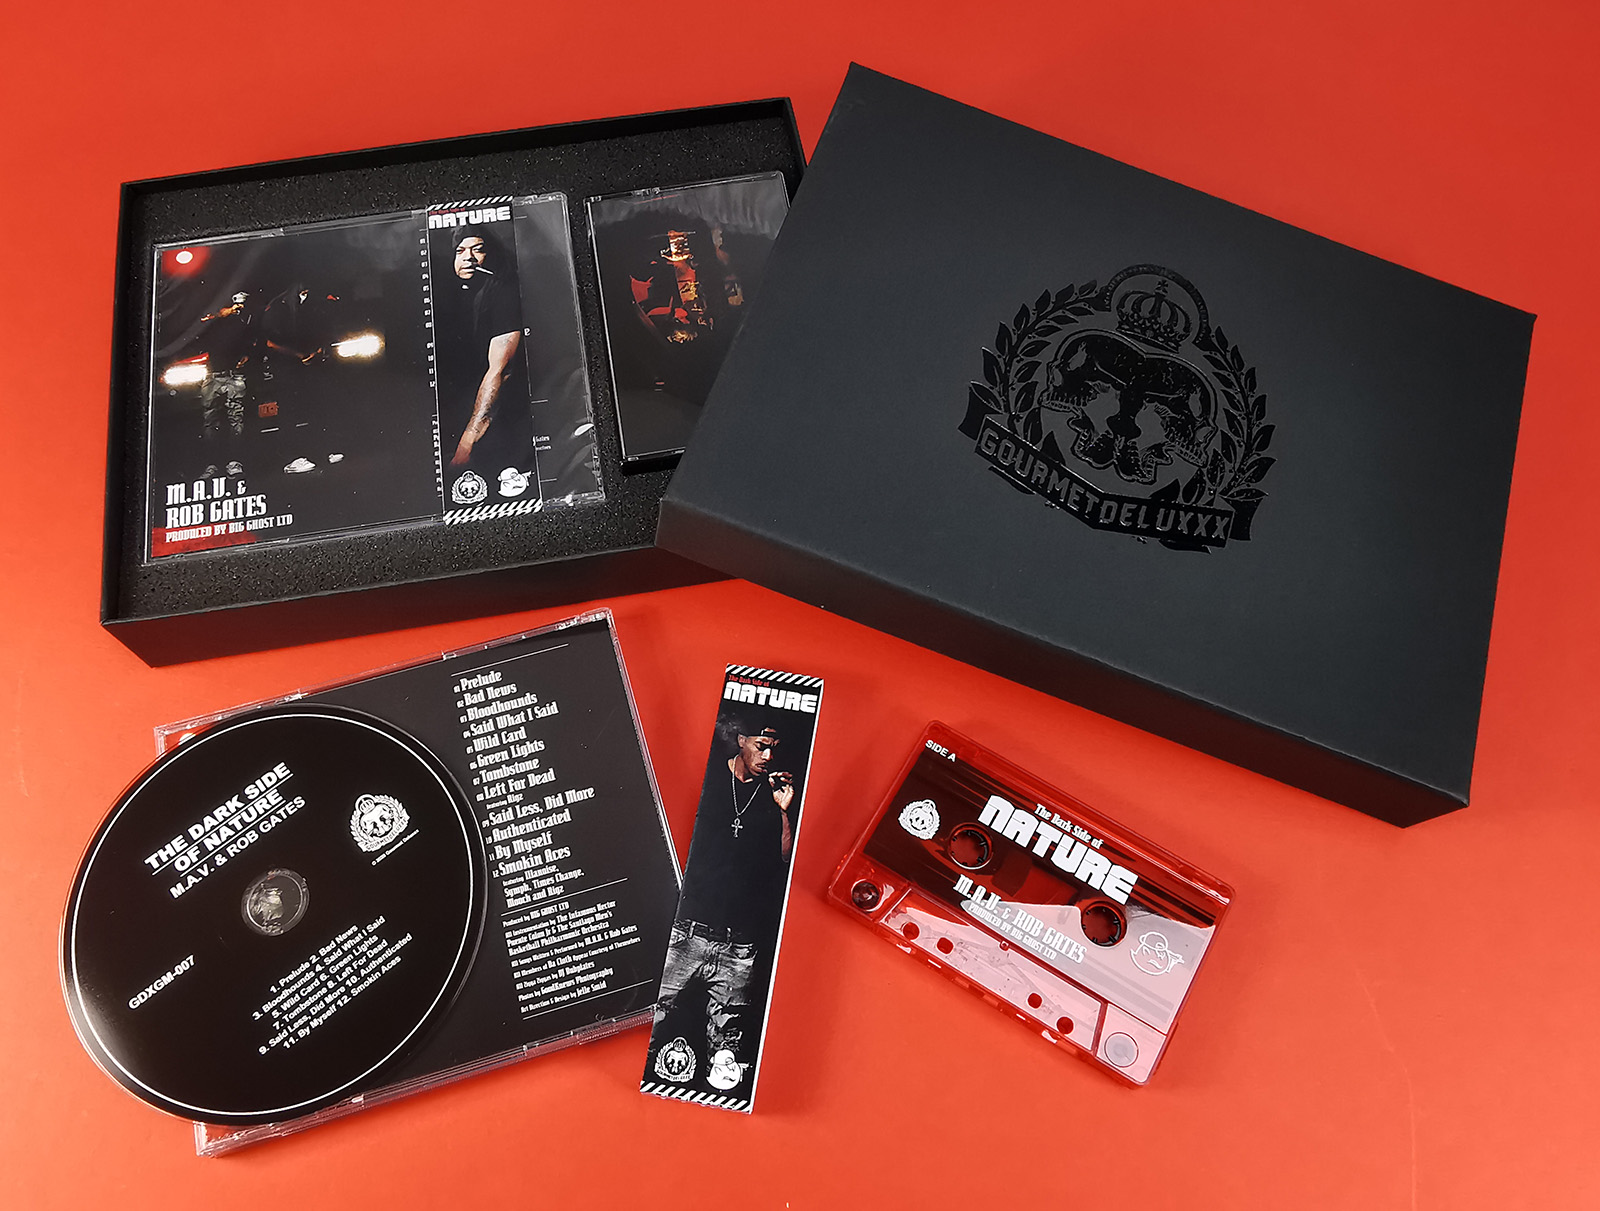 Cassette tape and CD jewel case box set in A5 presentation box with a black foil lid print